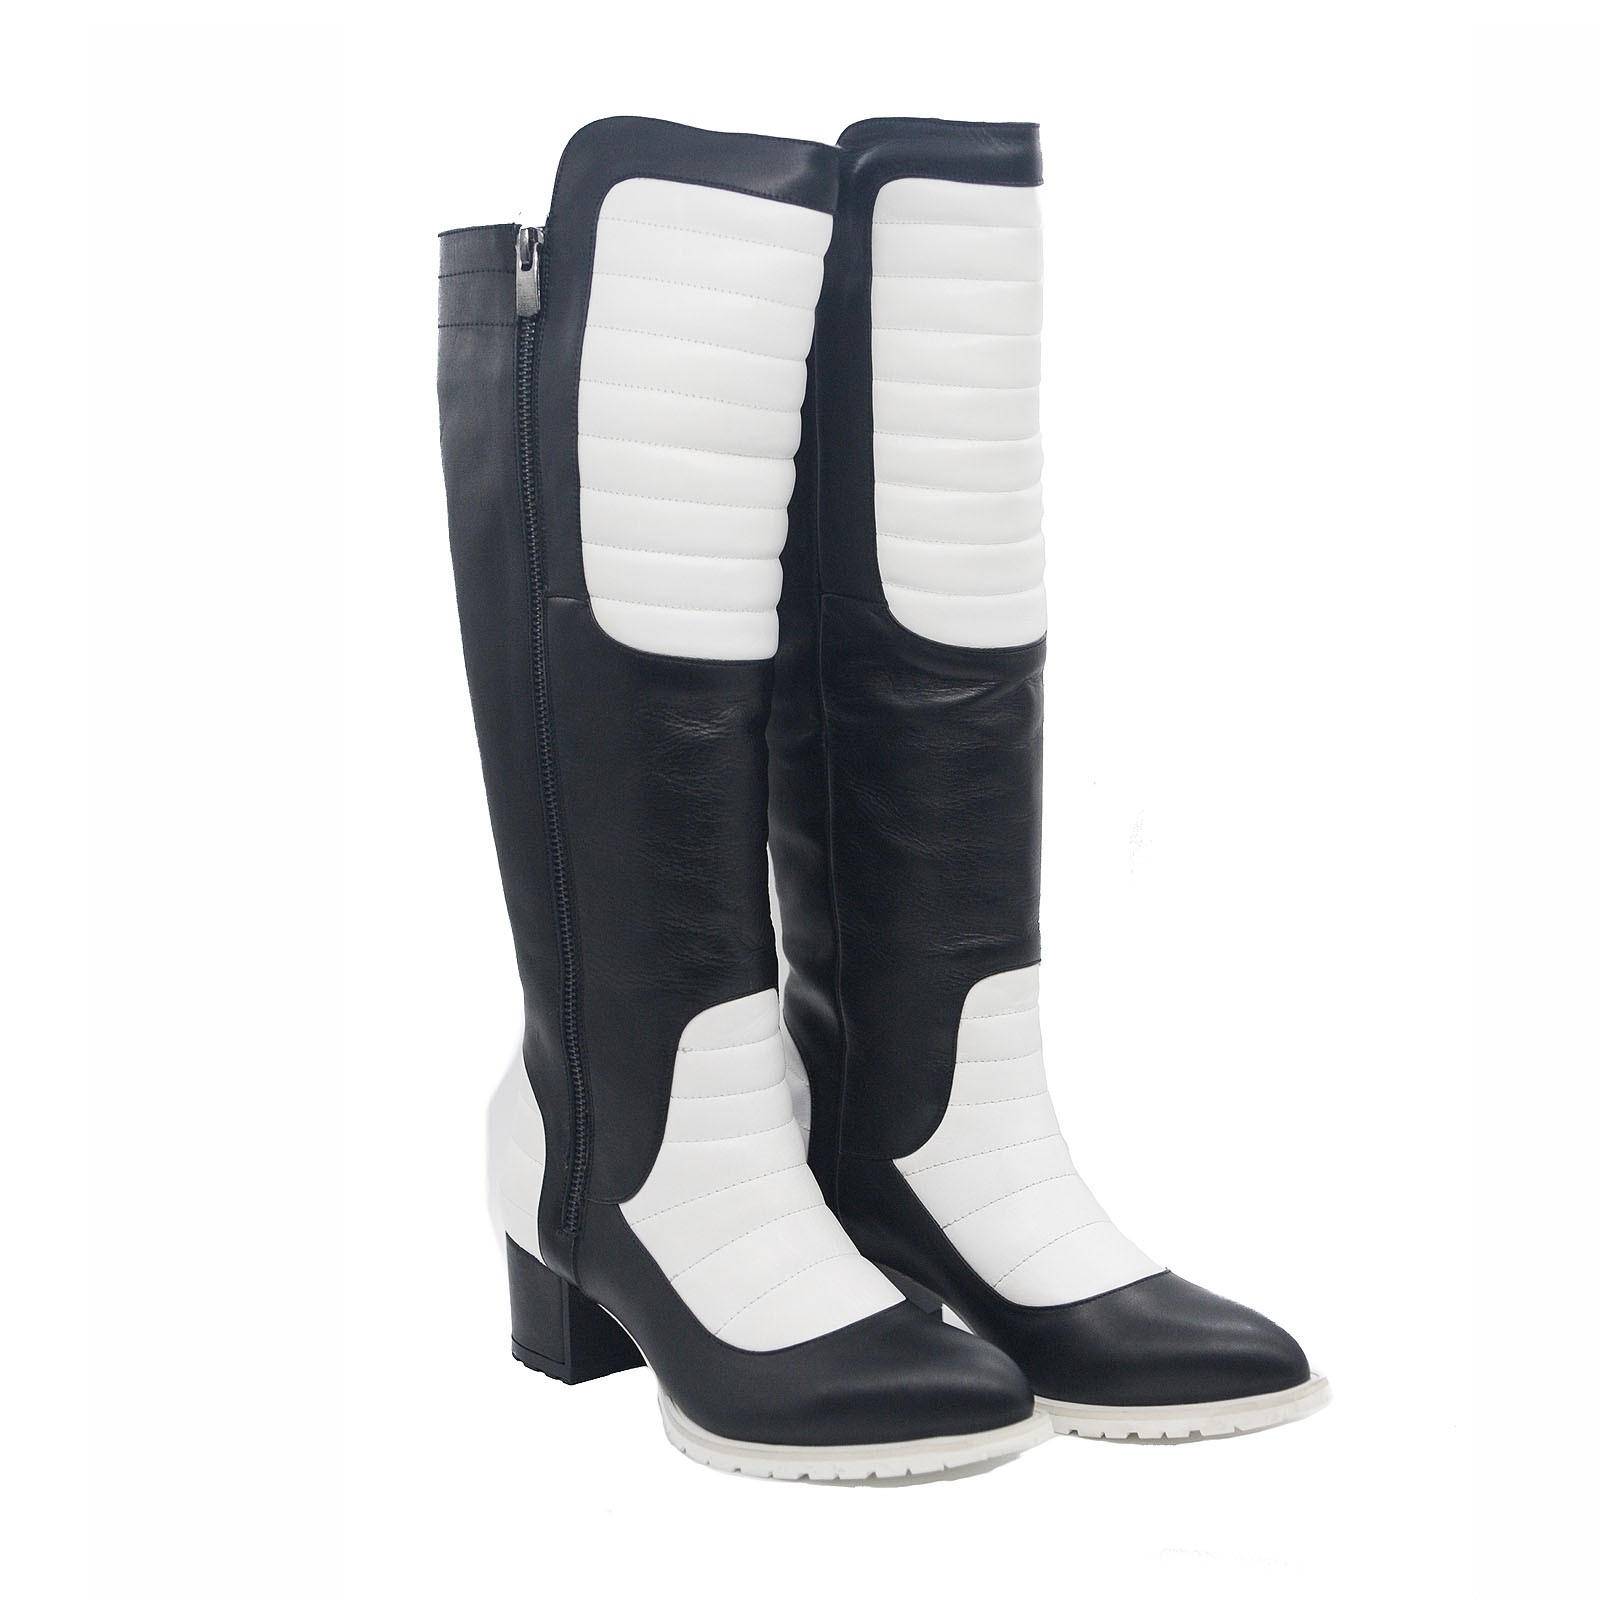 Goody2Shoes Ladies White and Black Leather Knee-High Boots